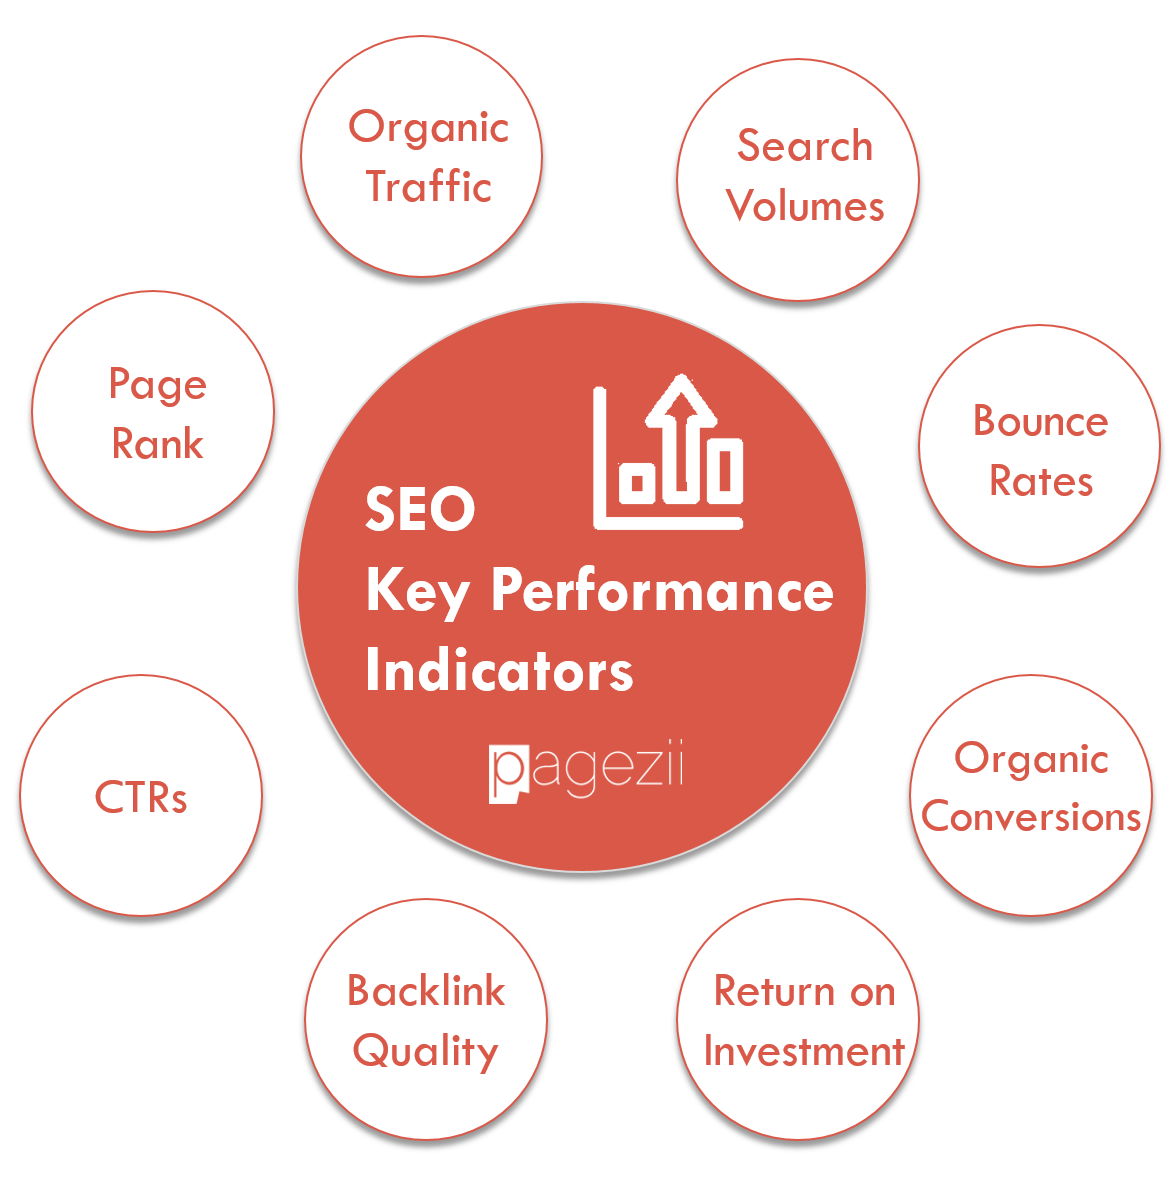 SEO KPIs Pagezii Digital Marketing Blog